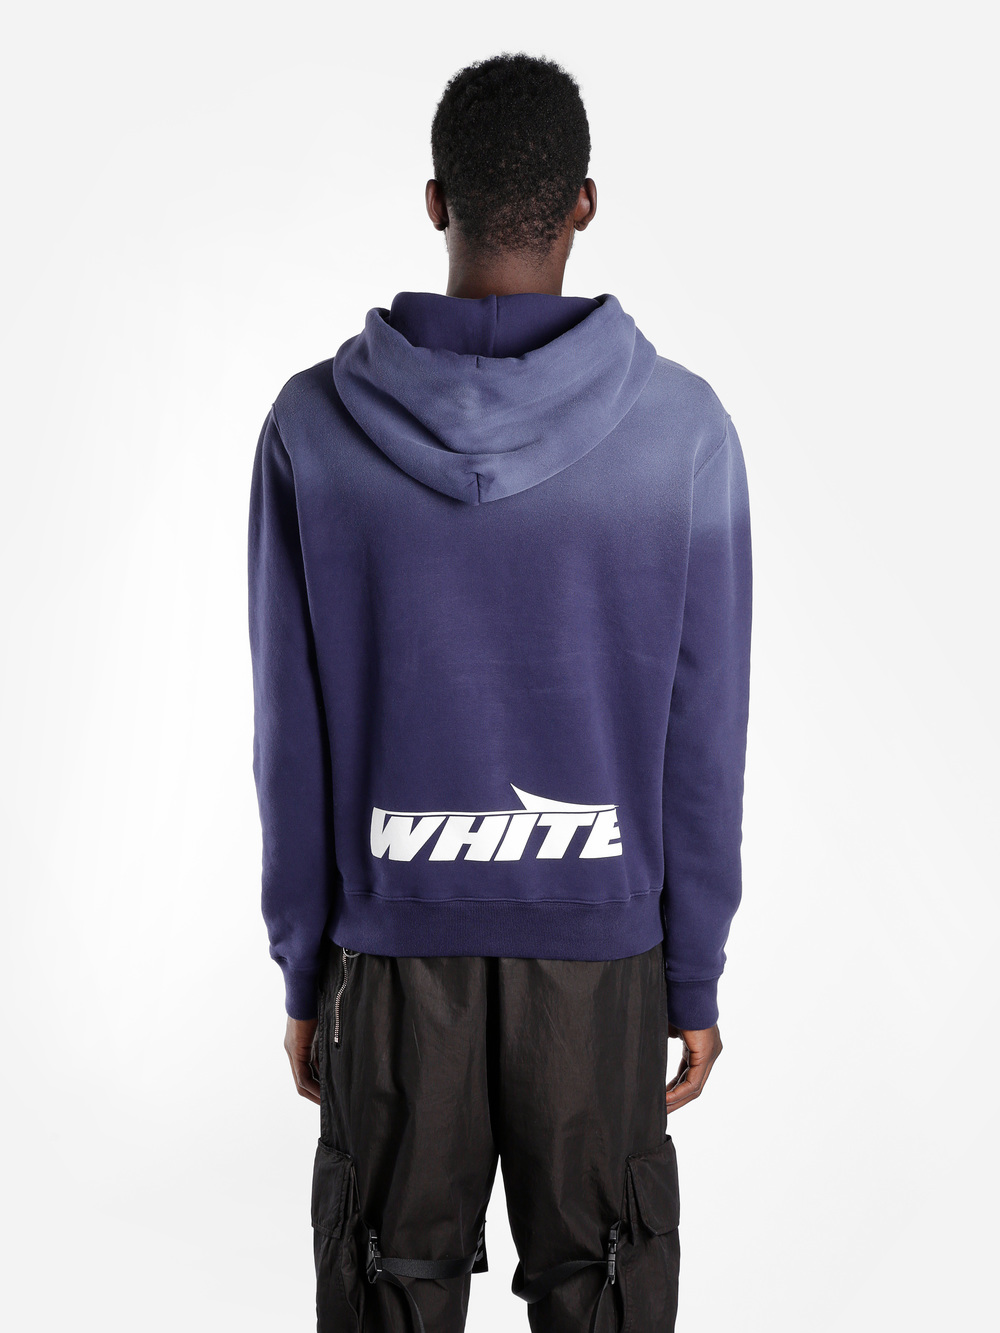 HomeCLOTHINGSweatersOff-White C O Virgil Abloh. Ombb034e181920033001 5652.  Ombb034e181920033001 5653 4a653543954d